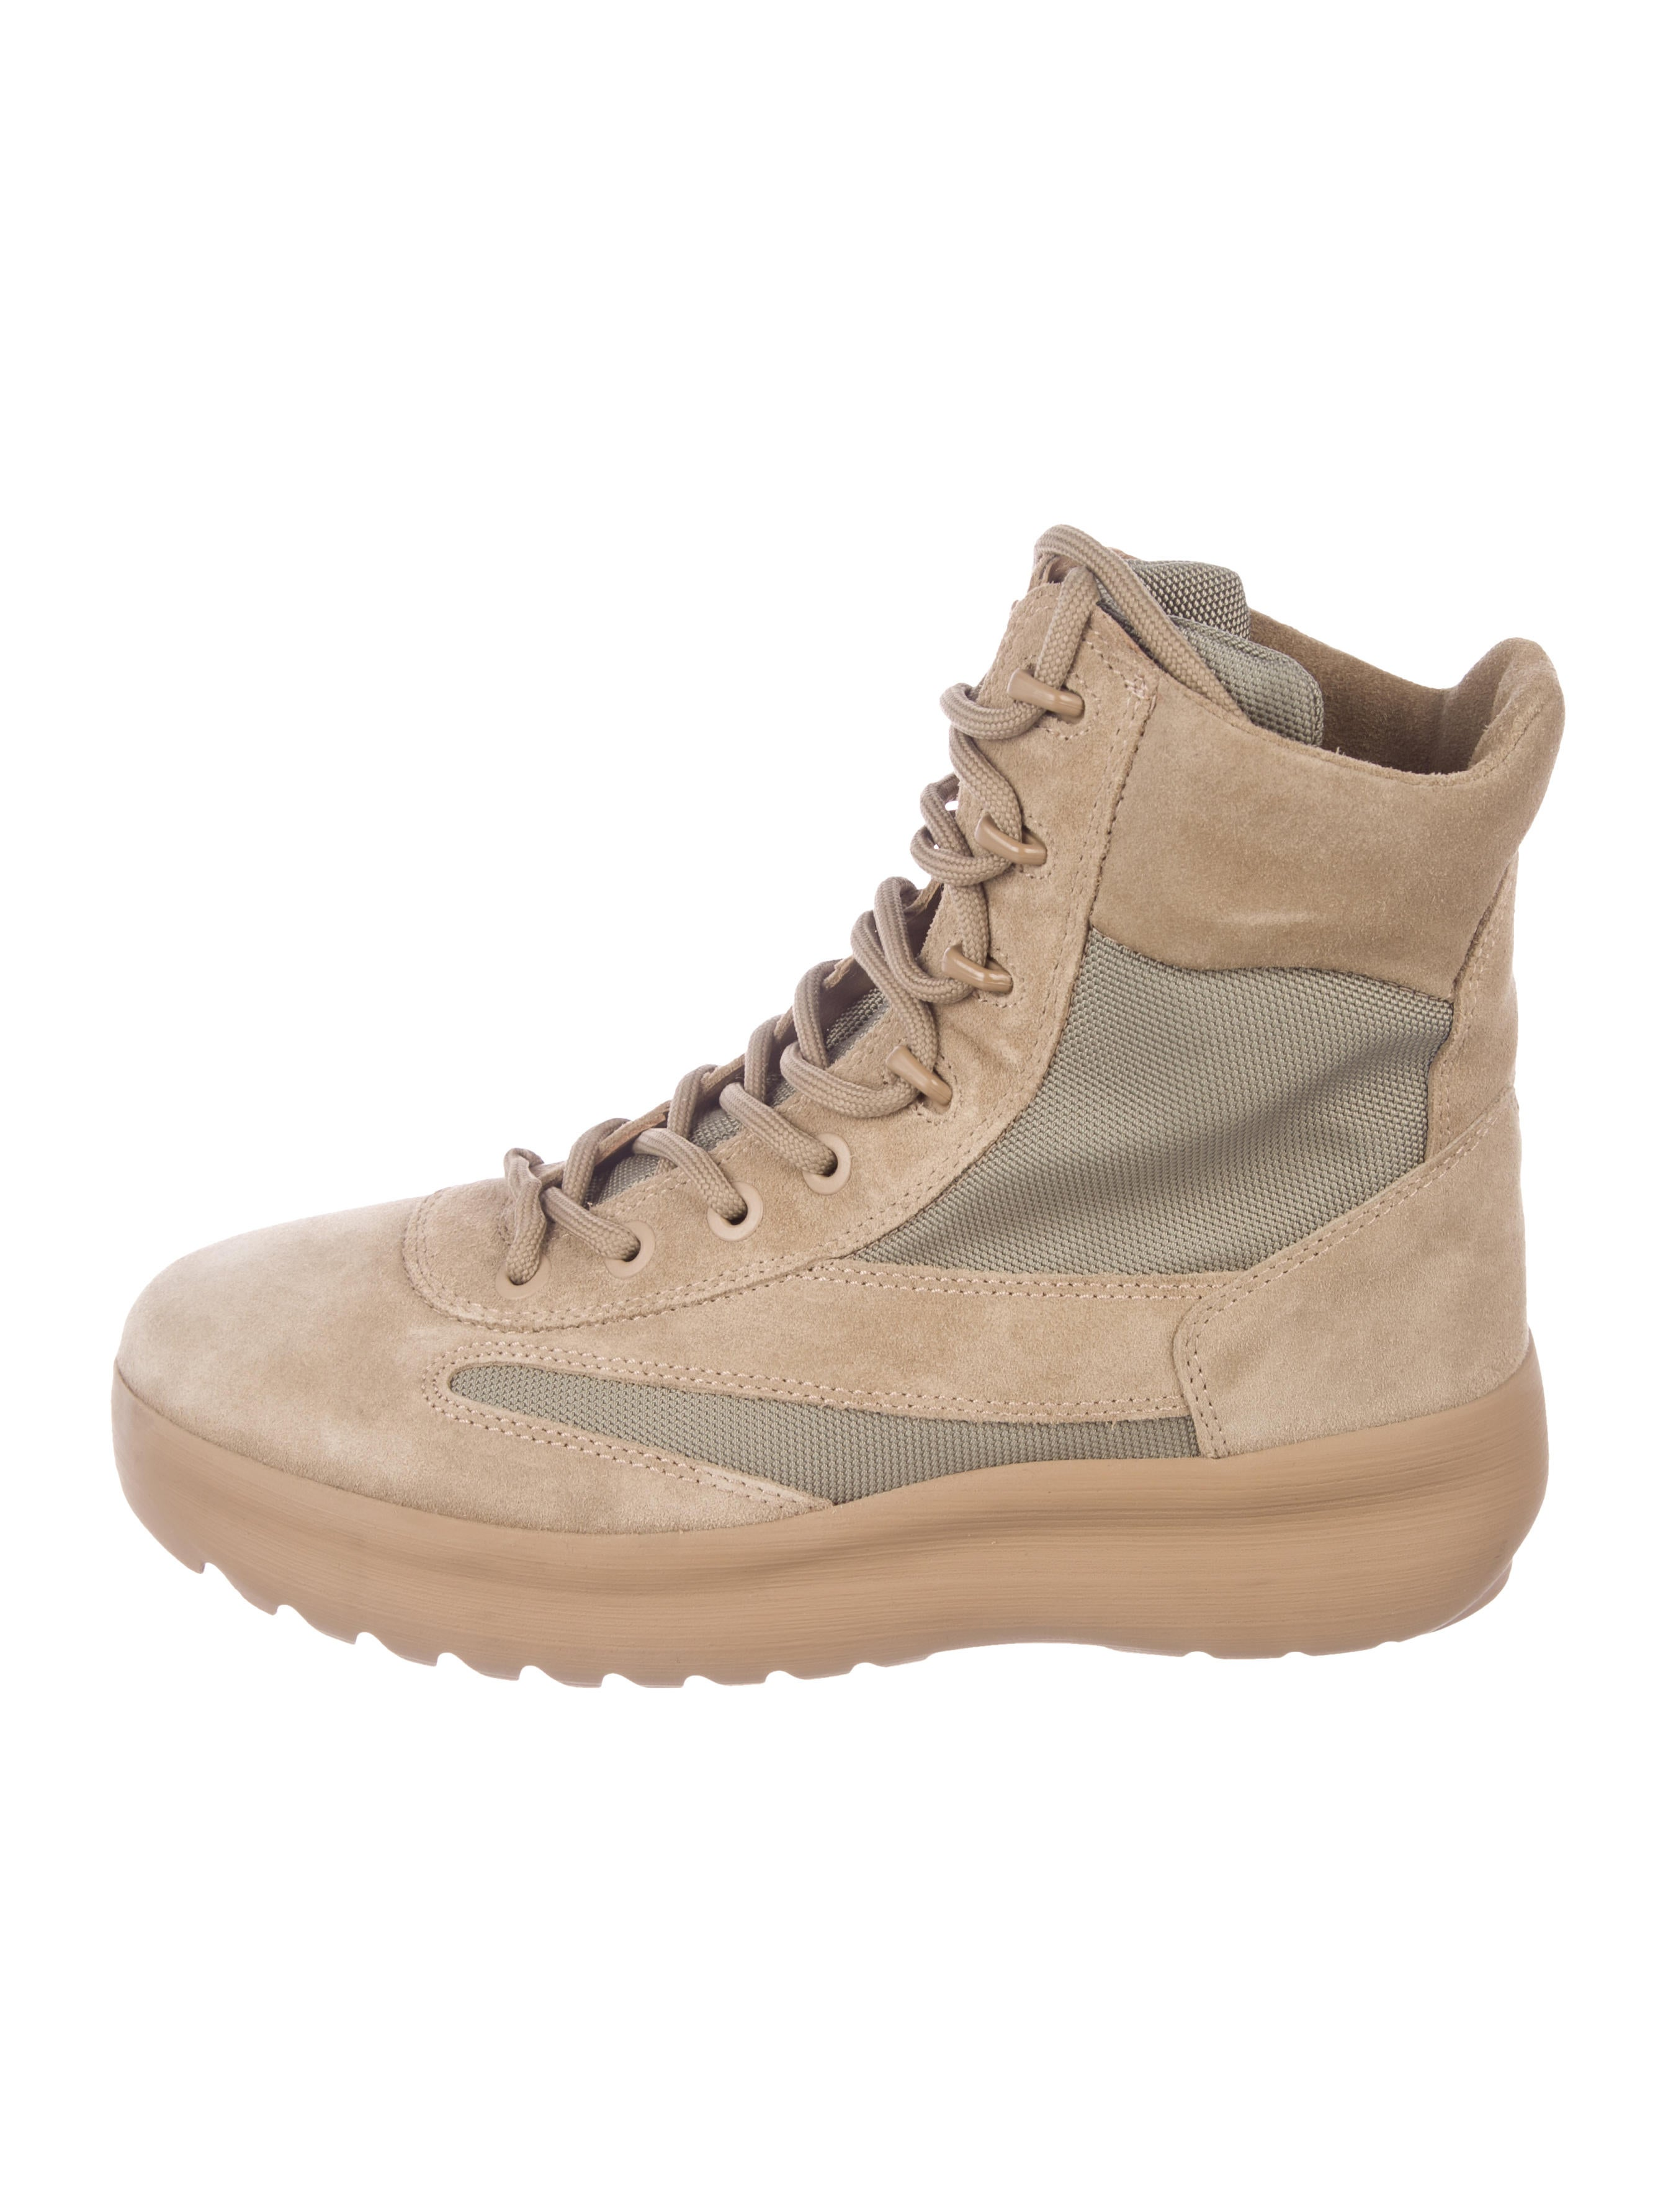 27ad879ea73 Yeezy Season 5 Canvas Taupe Boots - Shoes - WYEEZ22257